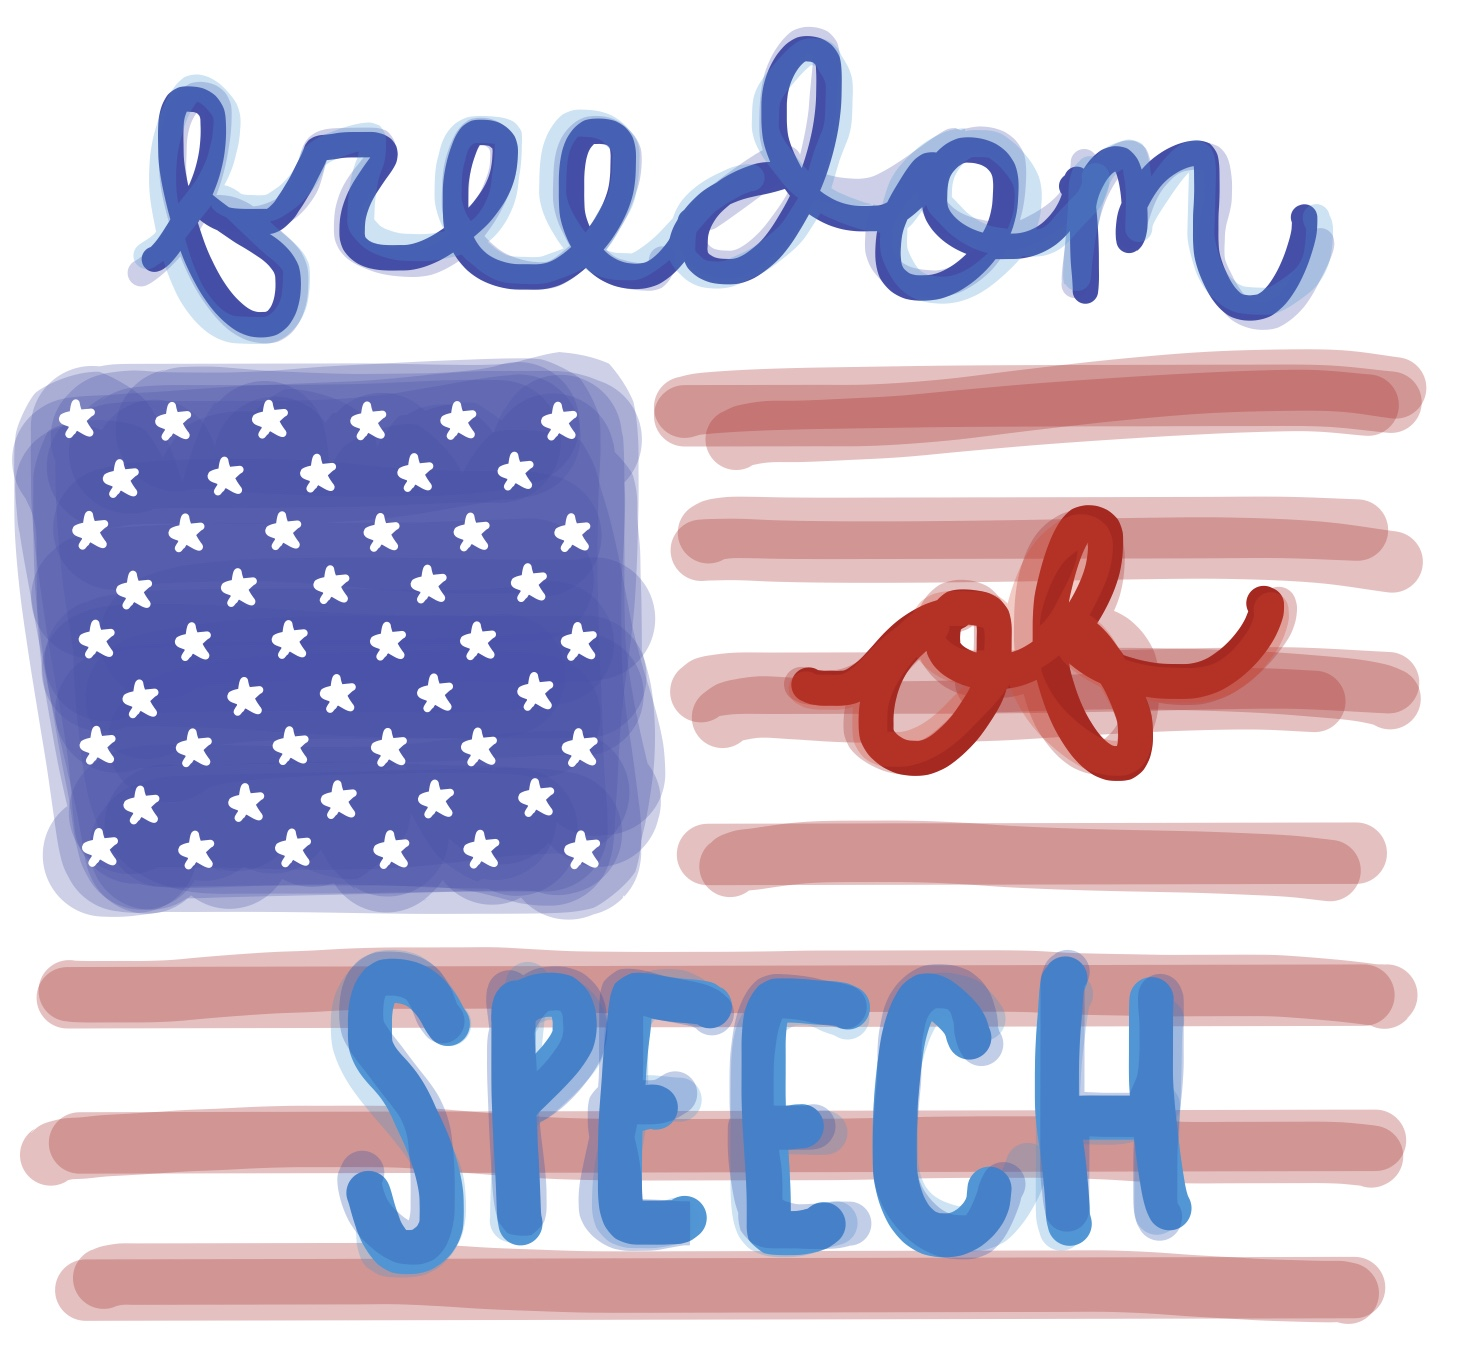 The debate on the enumerated right to freedom of speech in the First Amendment.